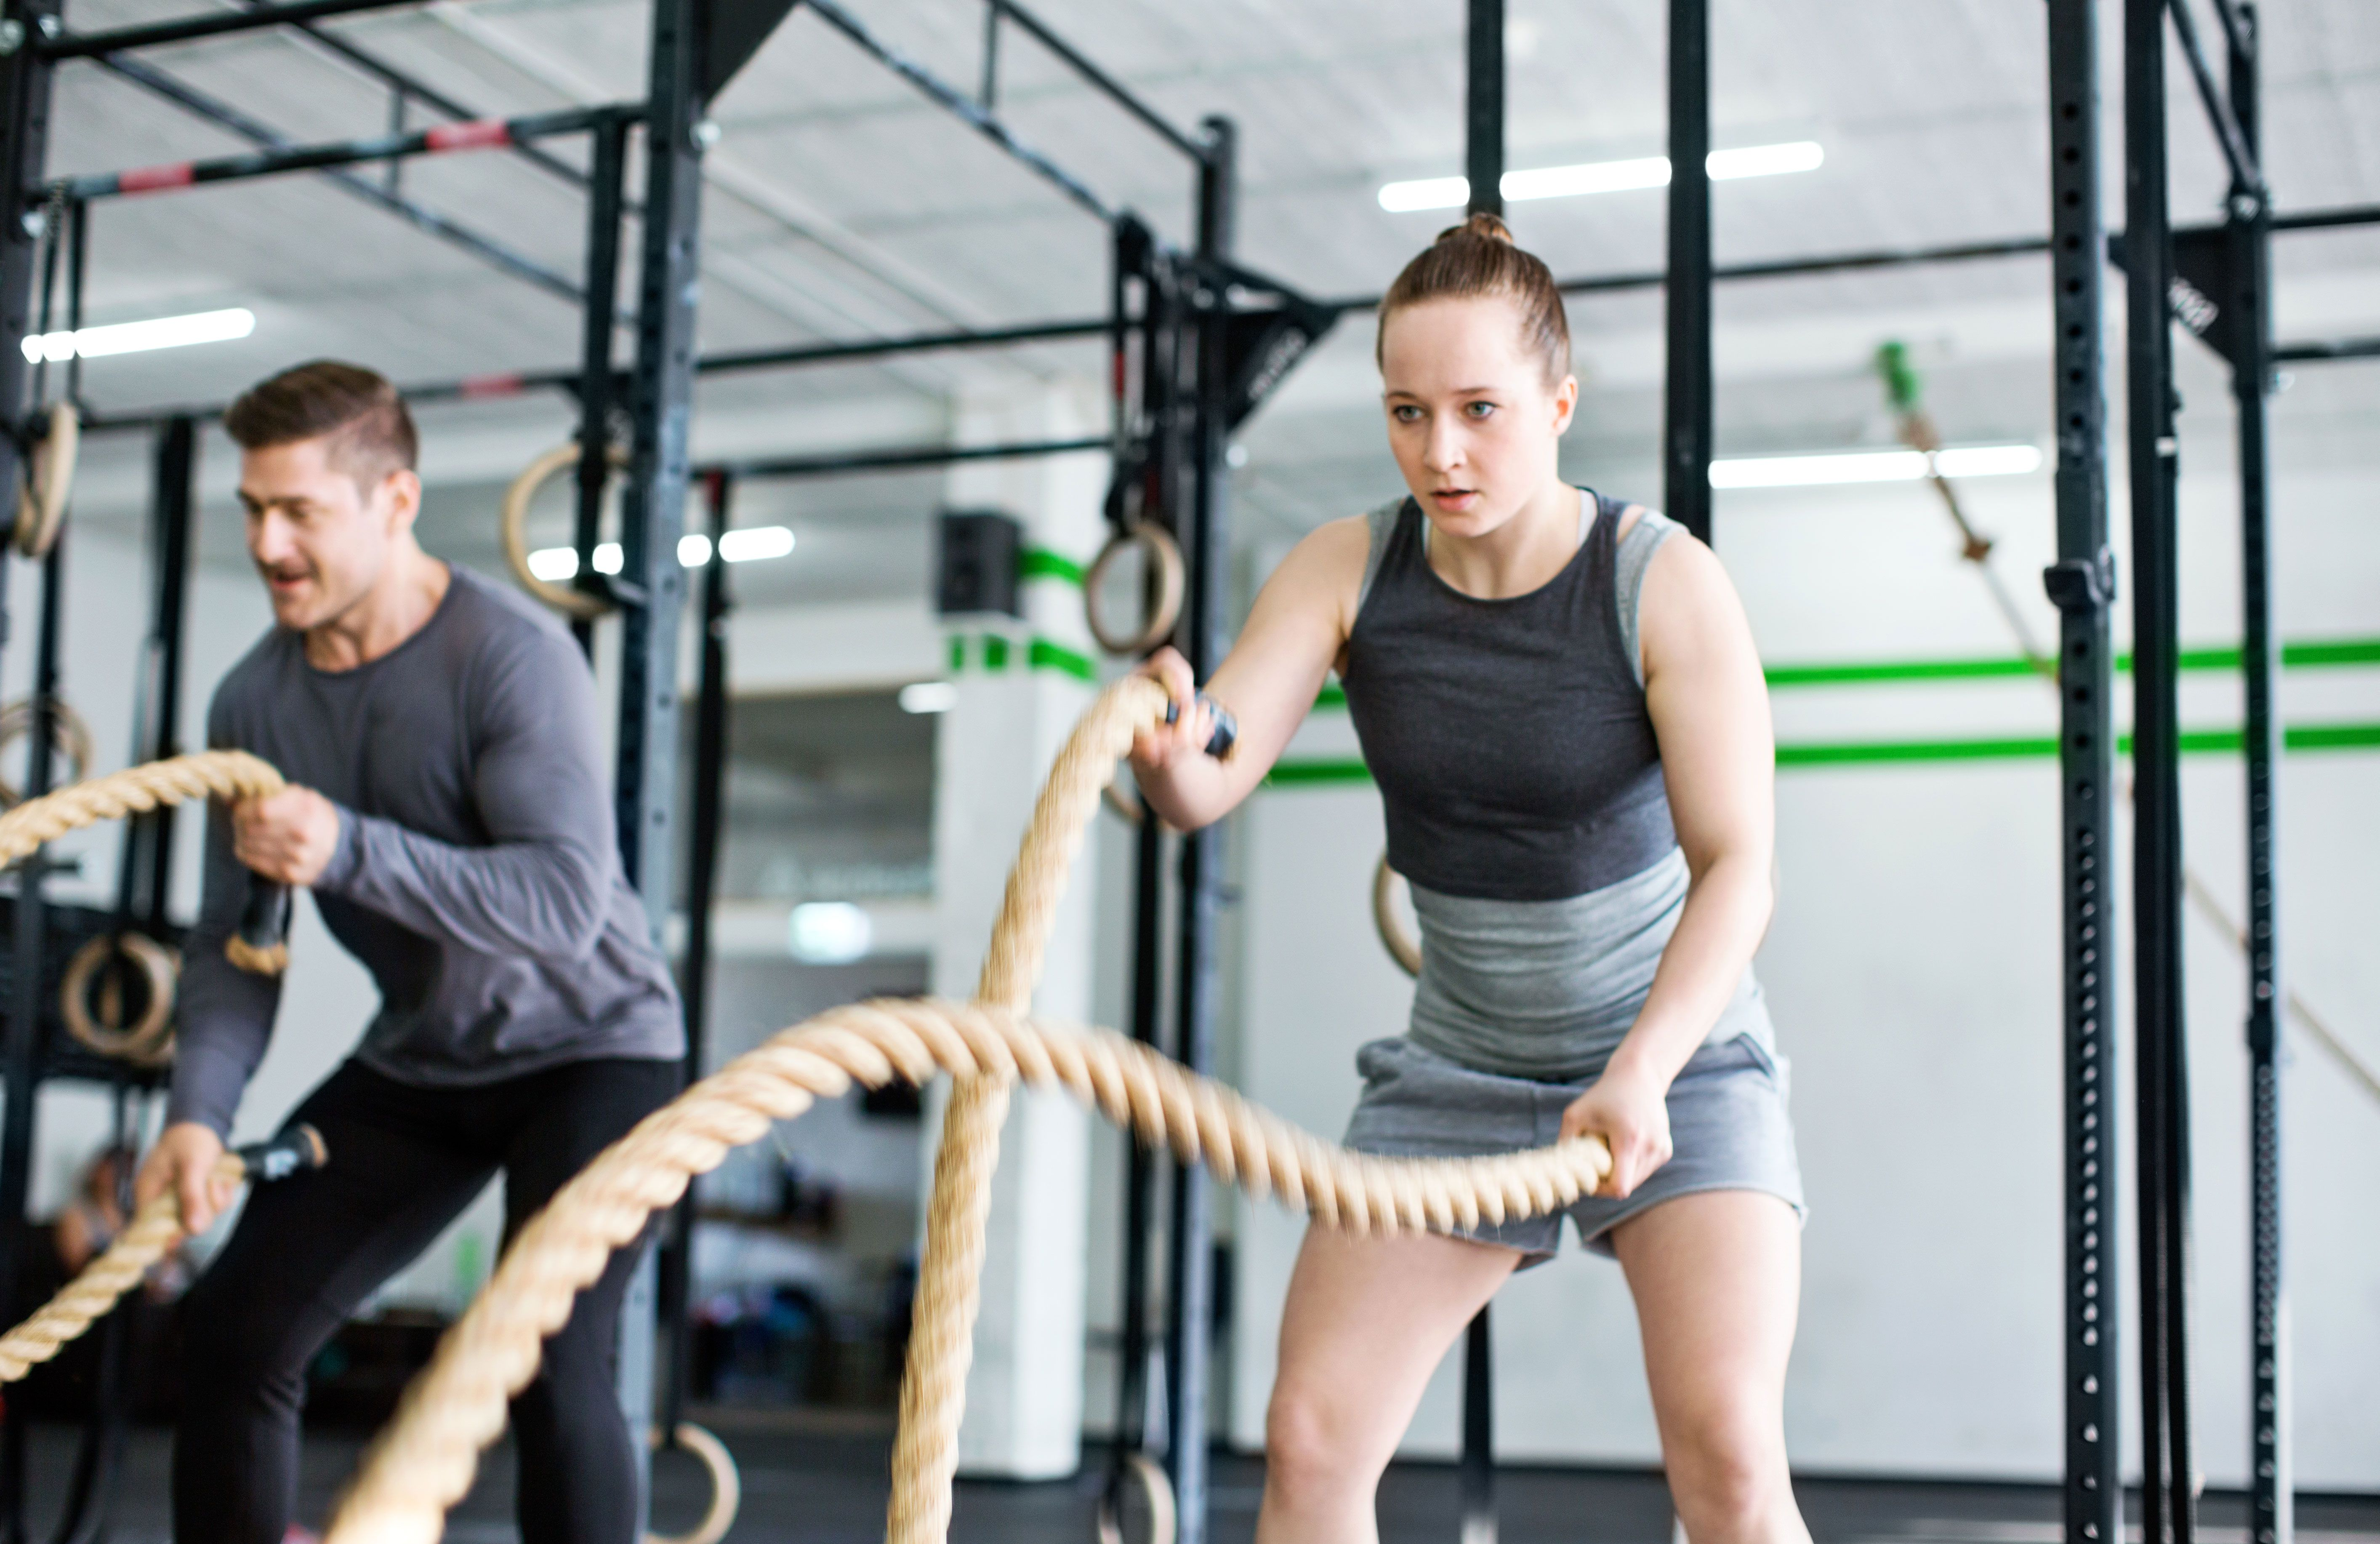 8 Battle Rope Exercises to Develop Power and Core Strength